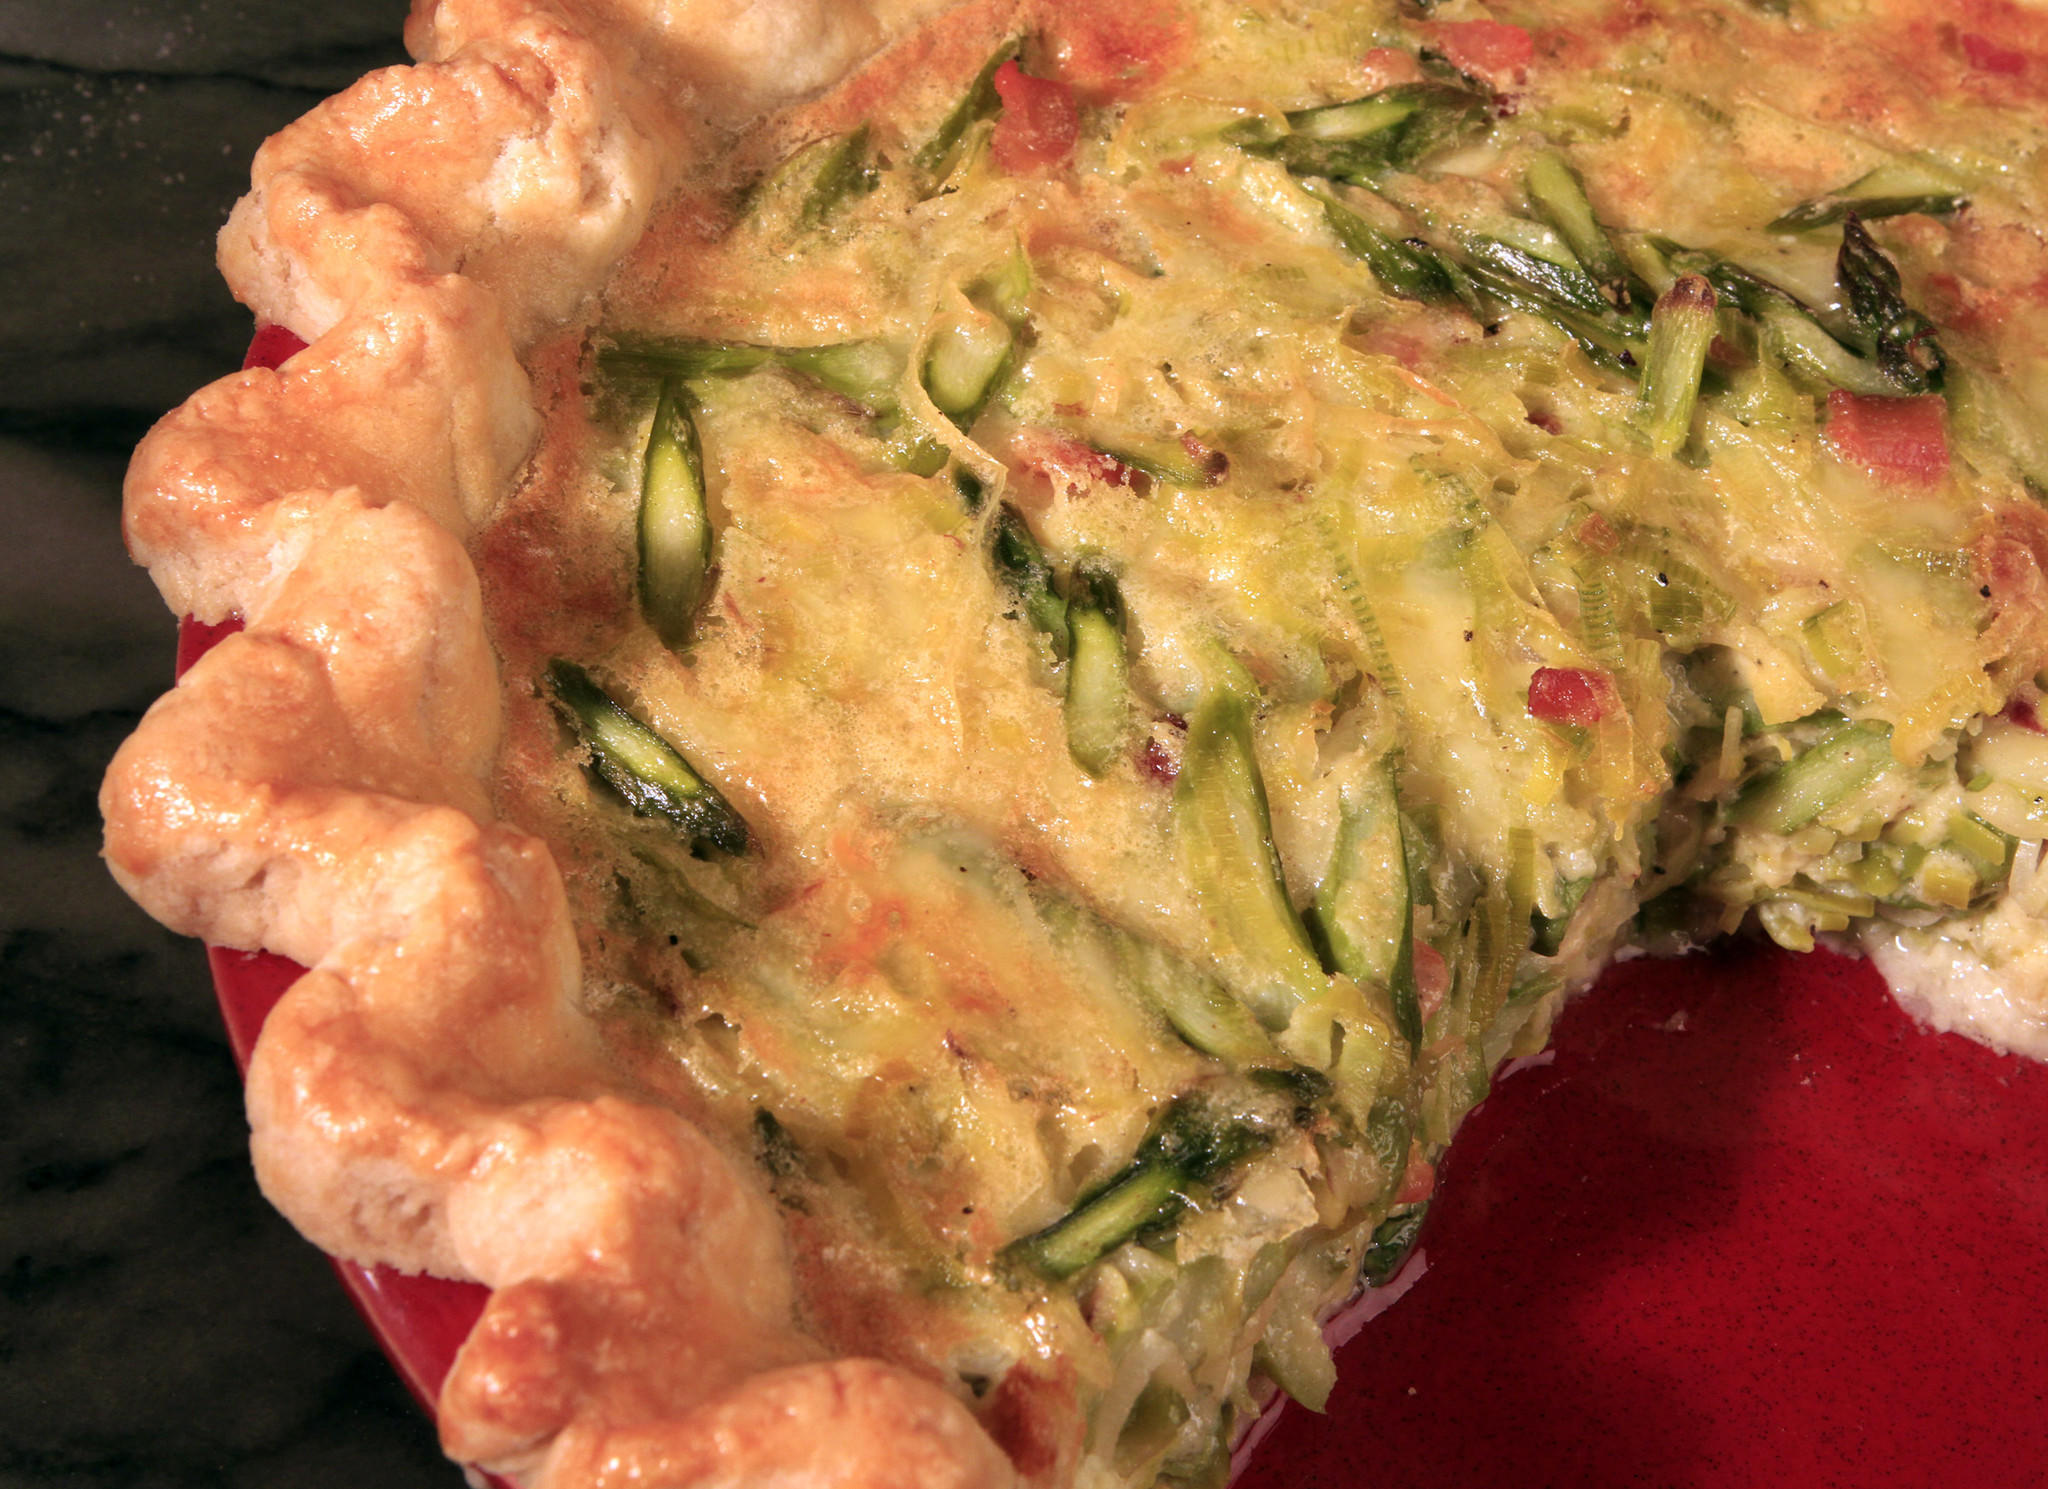 A quark tart with asparagus.